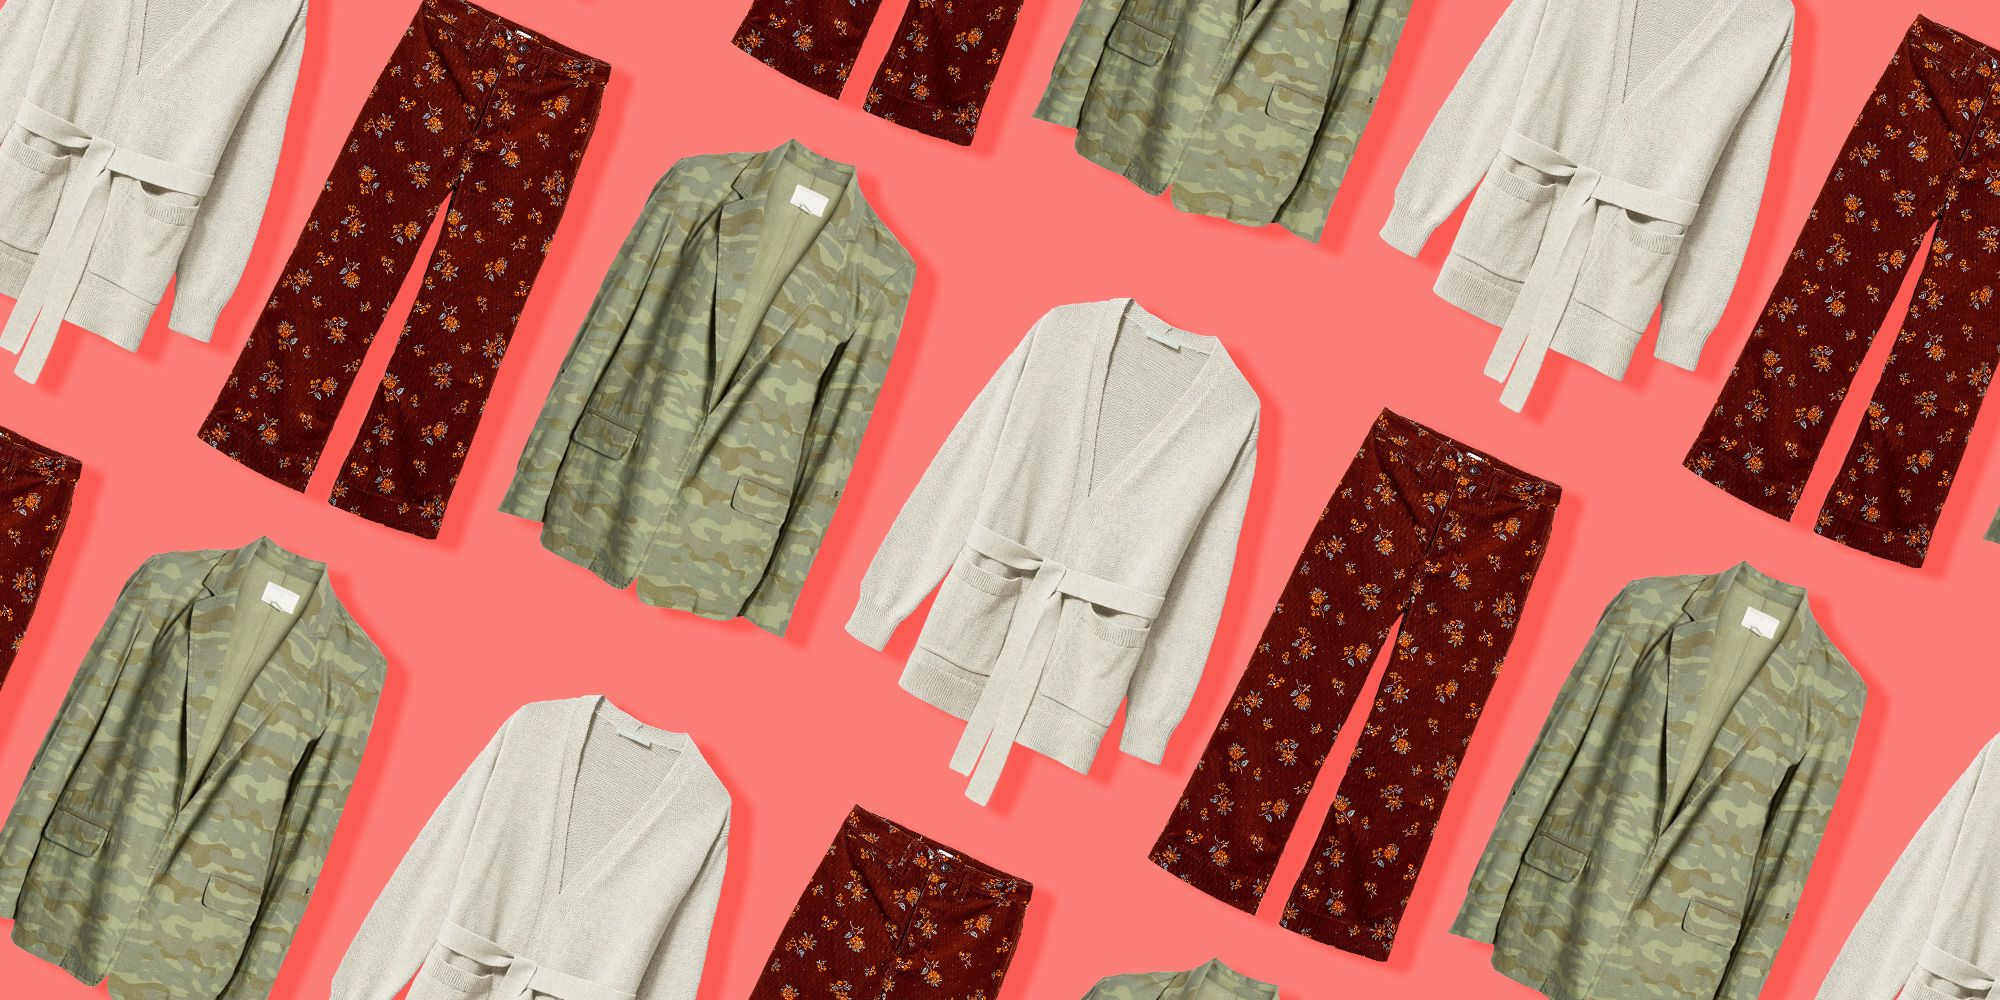 Dealing With Hot Flashes? These 7 Wardrobe Staples Will Keep You Comfortable